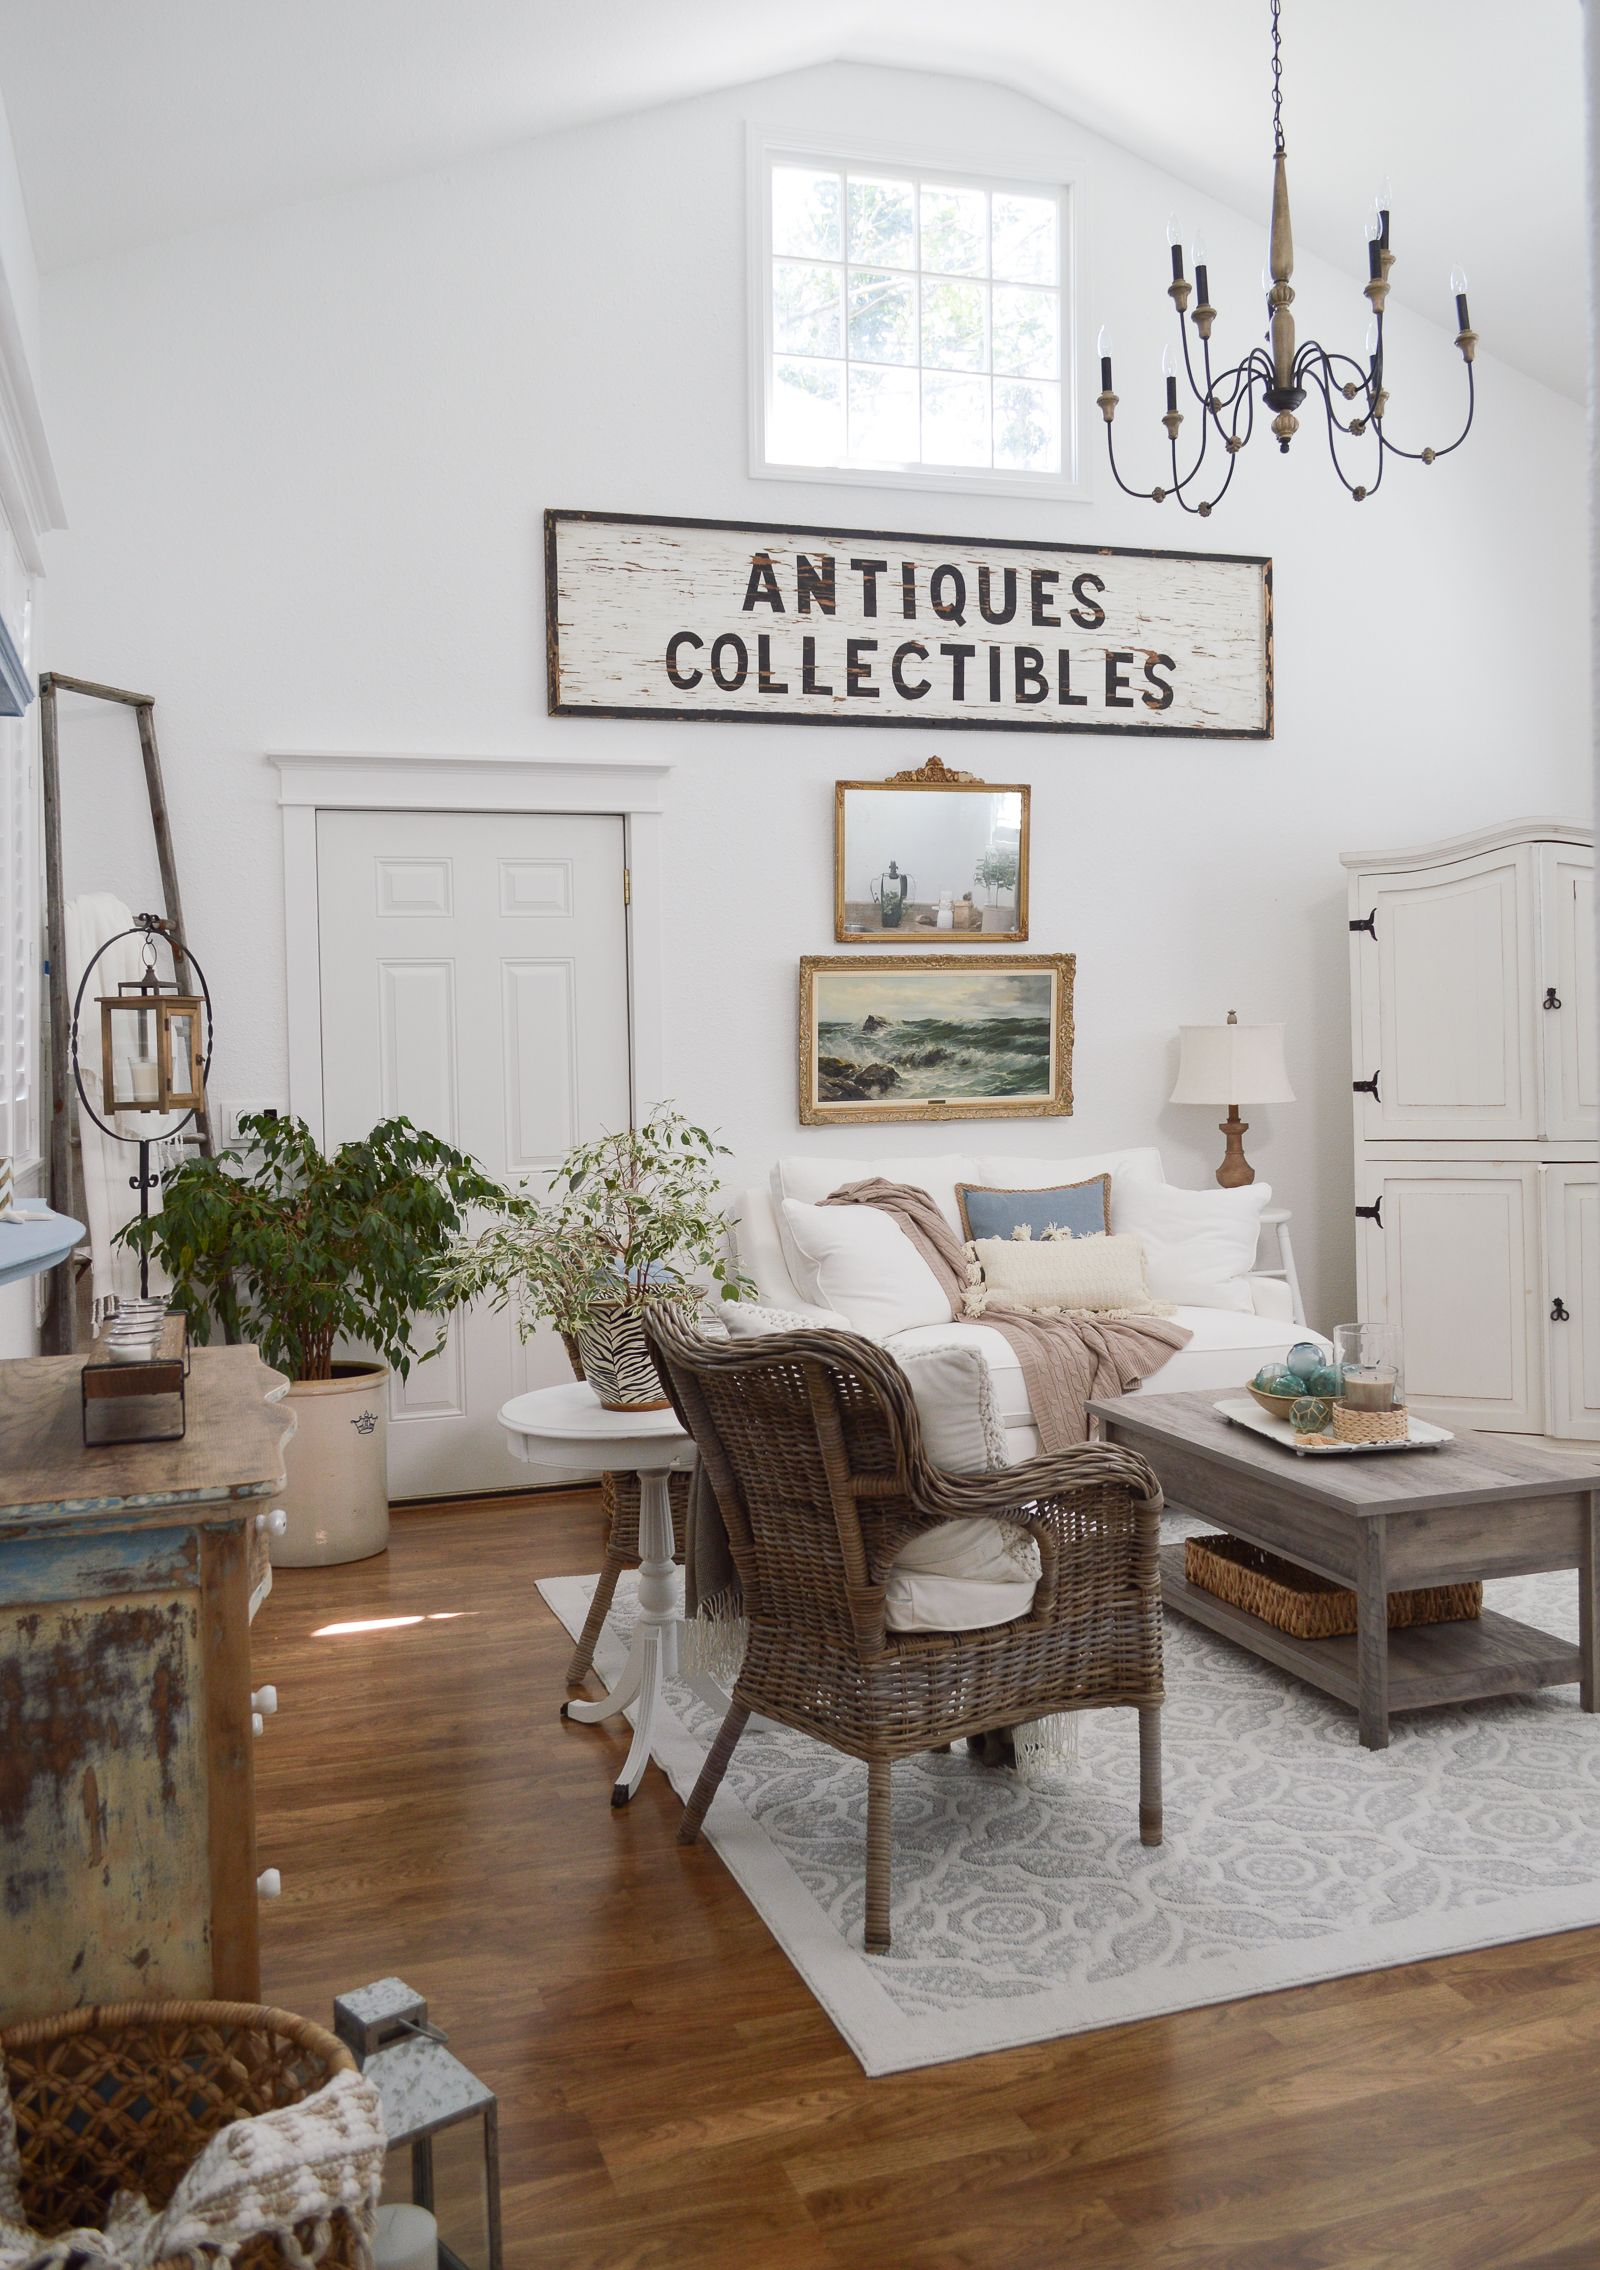 New Home Decorating Tips and Ideas | Farmhouse style, Living rooms ...